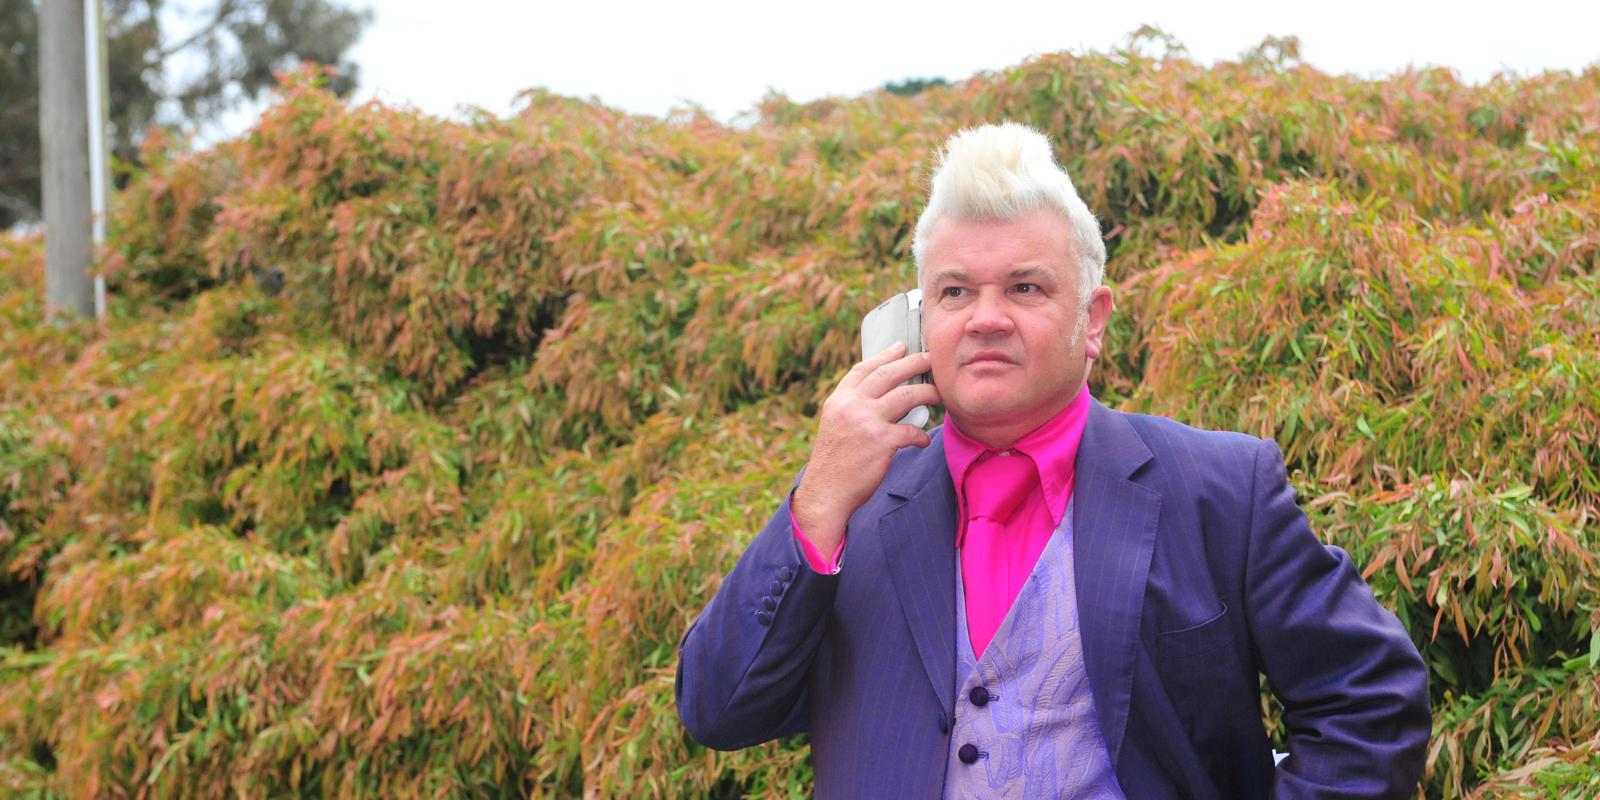 Celebrity Big Brother's Darryn Lyons elected mayor in ...